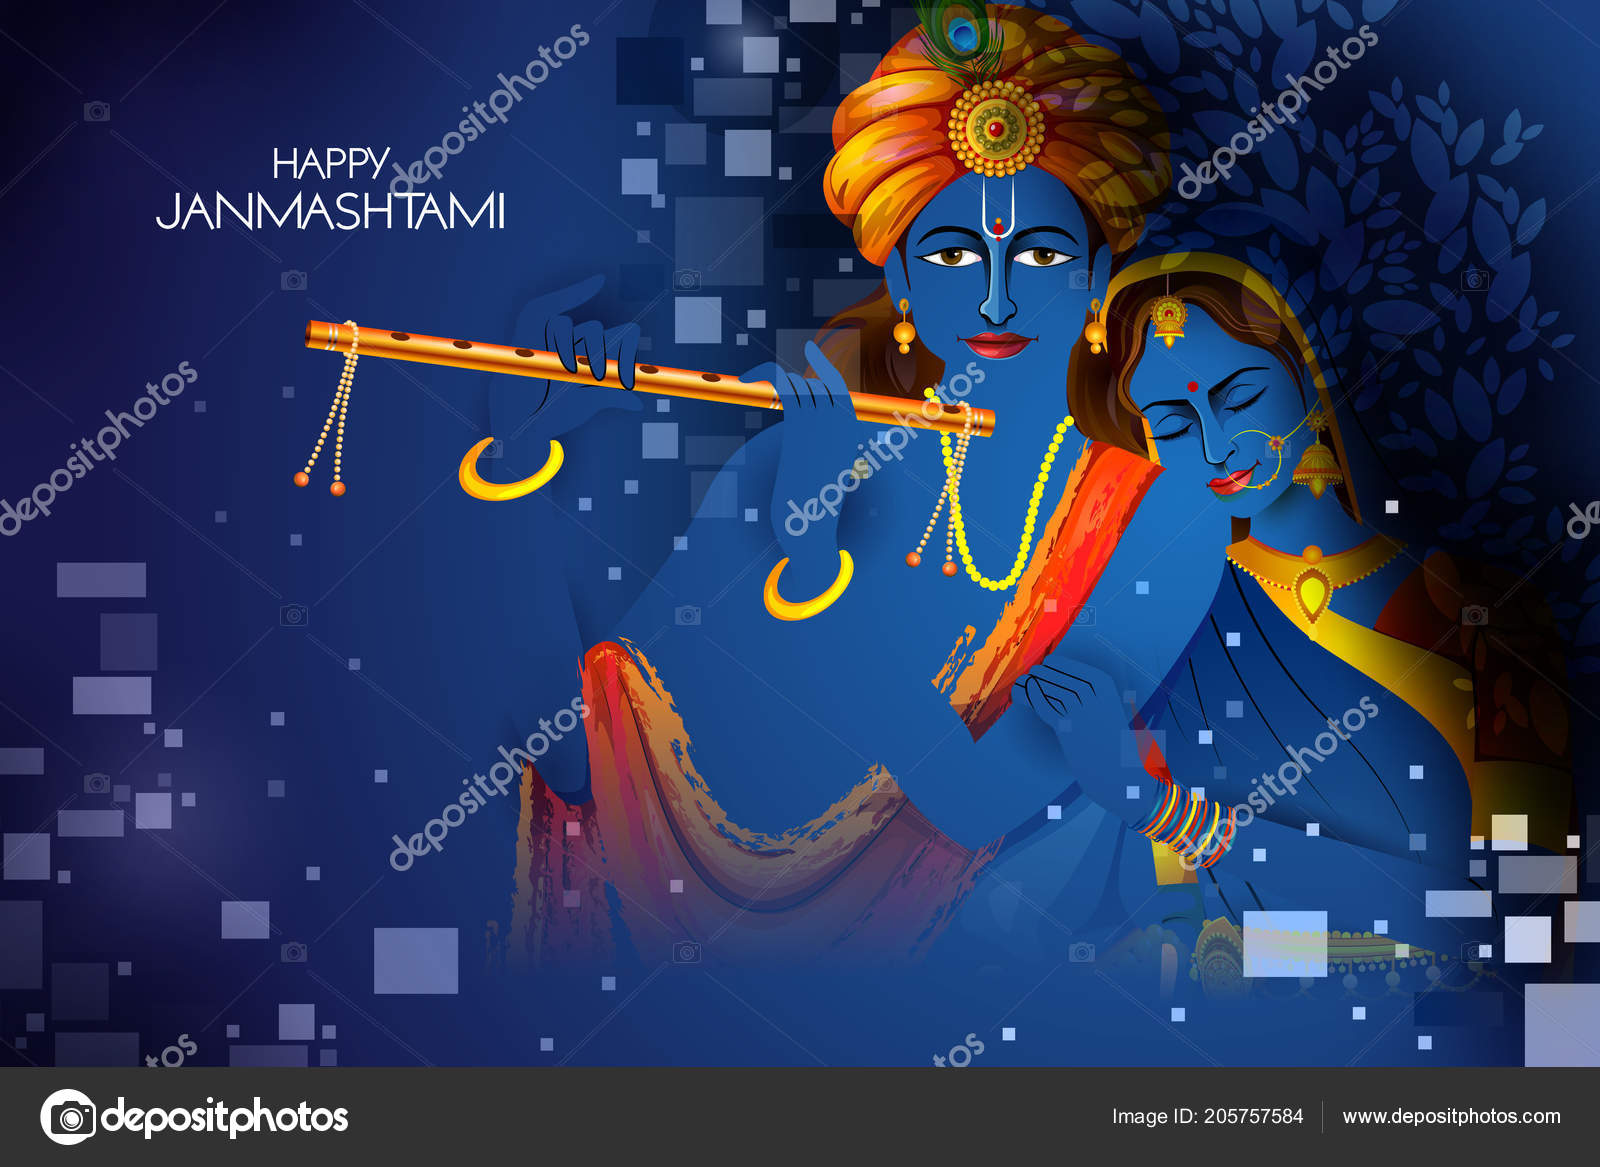 depositphotos 205757584 stock illustration lord krishna and radha playing